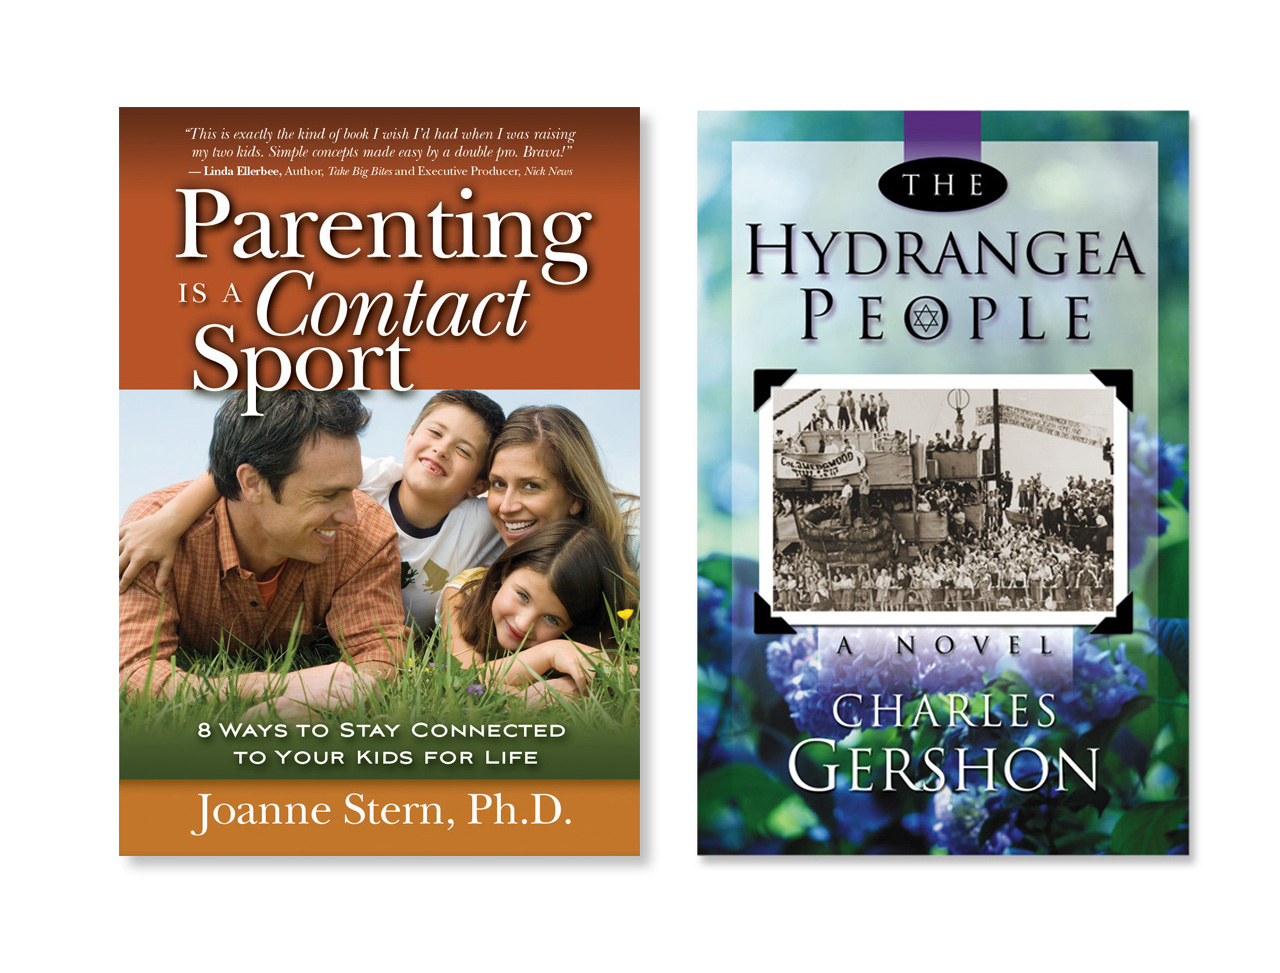 Parenting is a Contact Sport by Joanne Stern